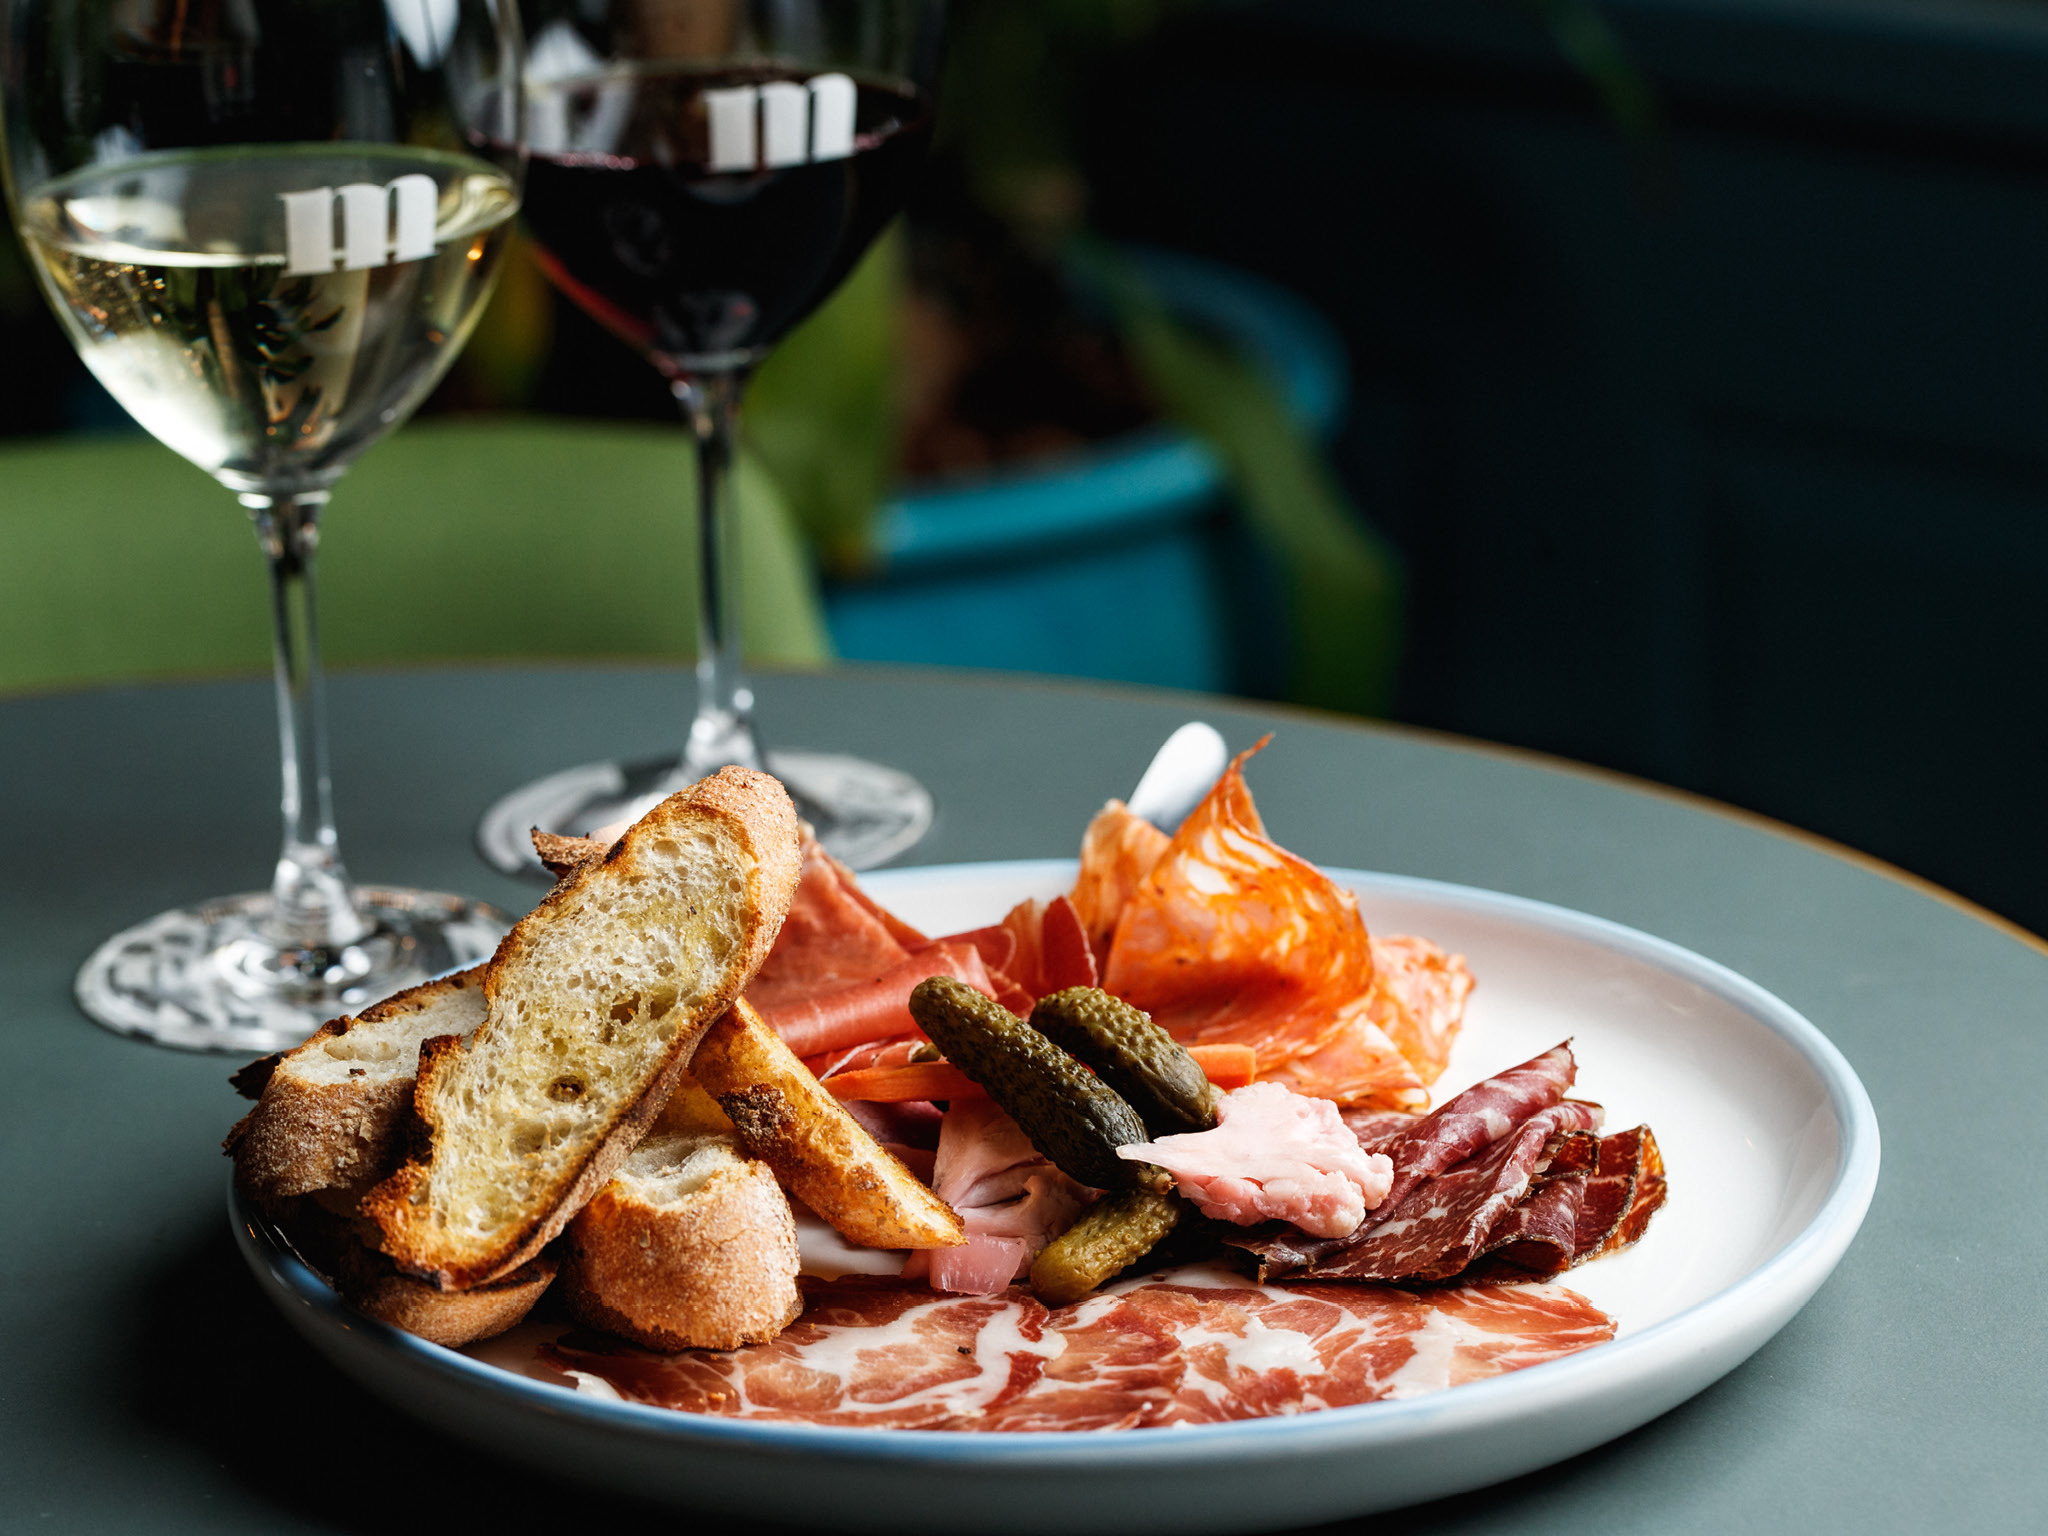 A plate of cured meats and nibbles with a glass of wine.